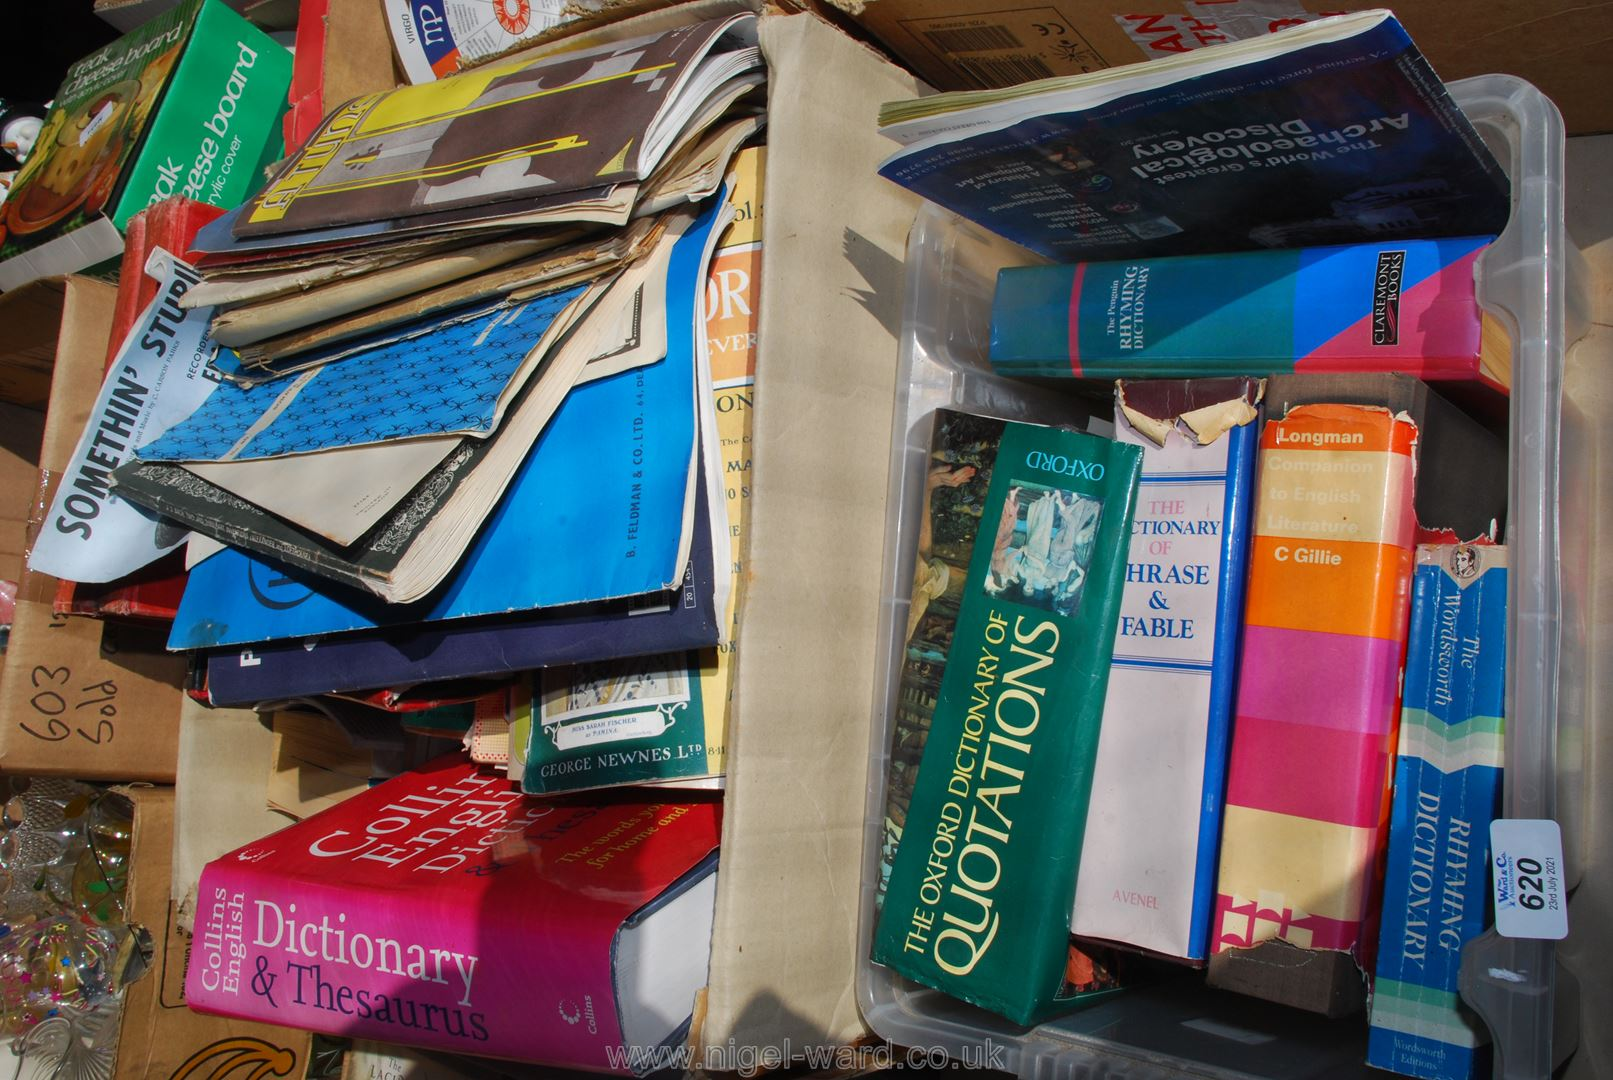 Two boxes of books including dictionaries